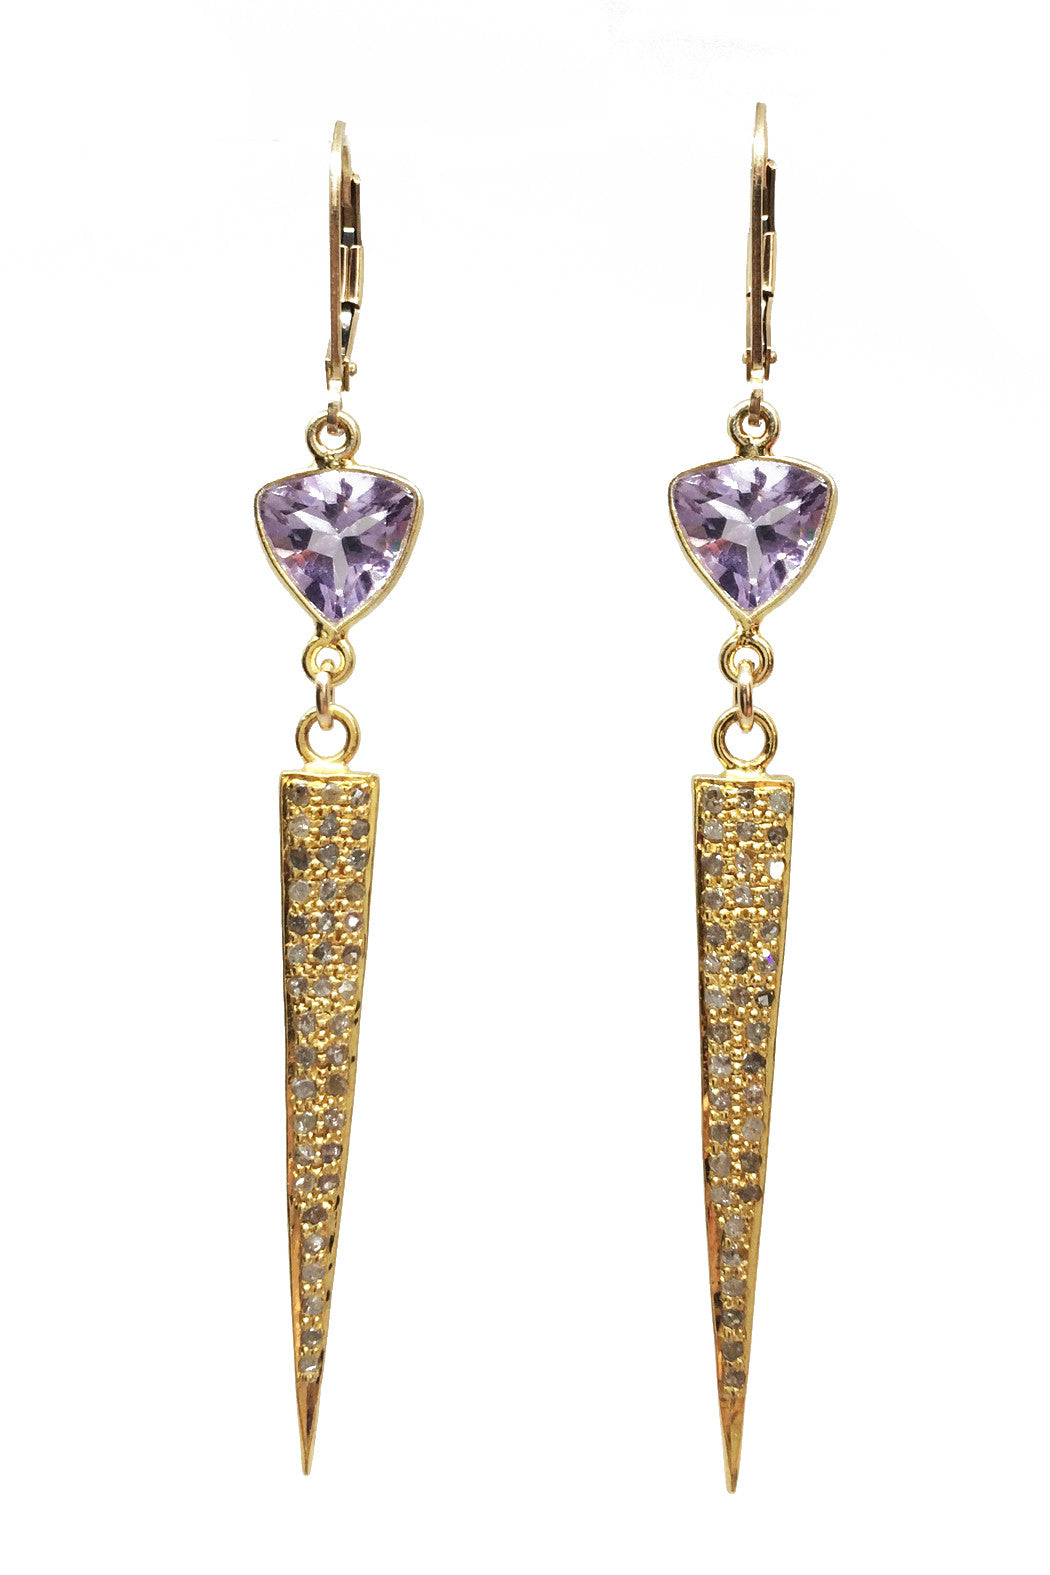 Amethyst stiletto earrings